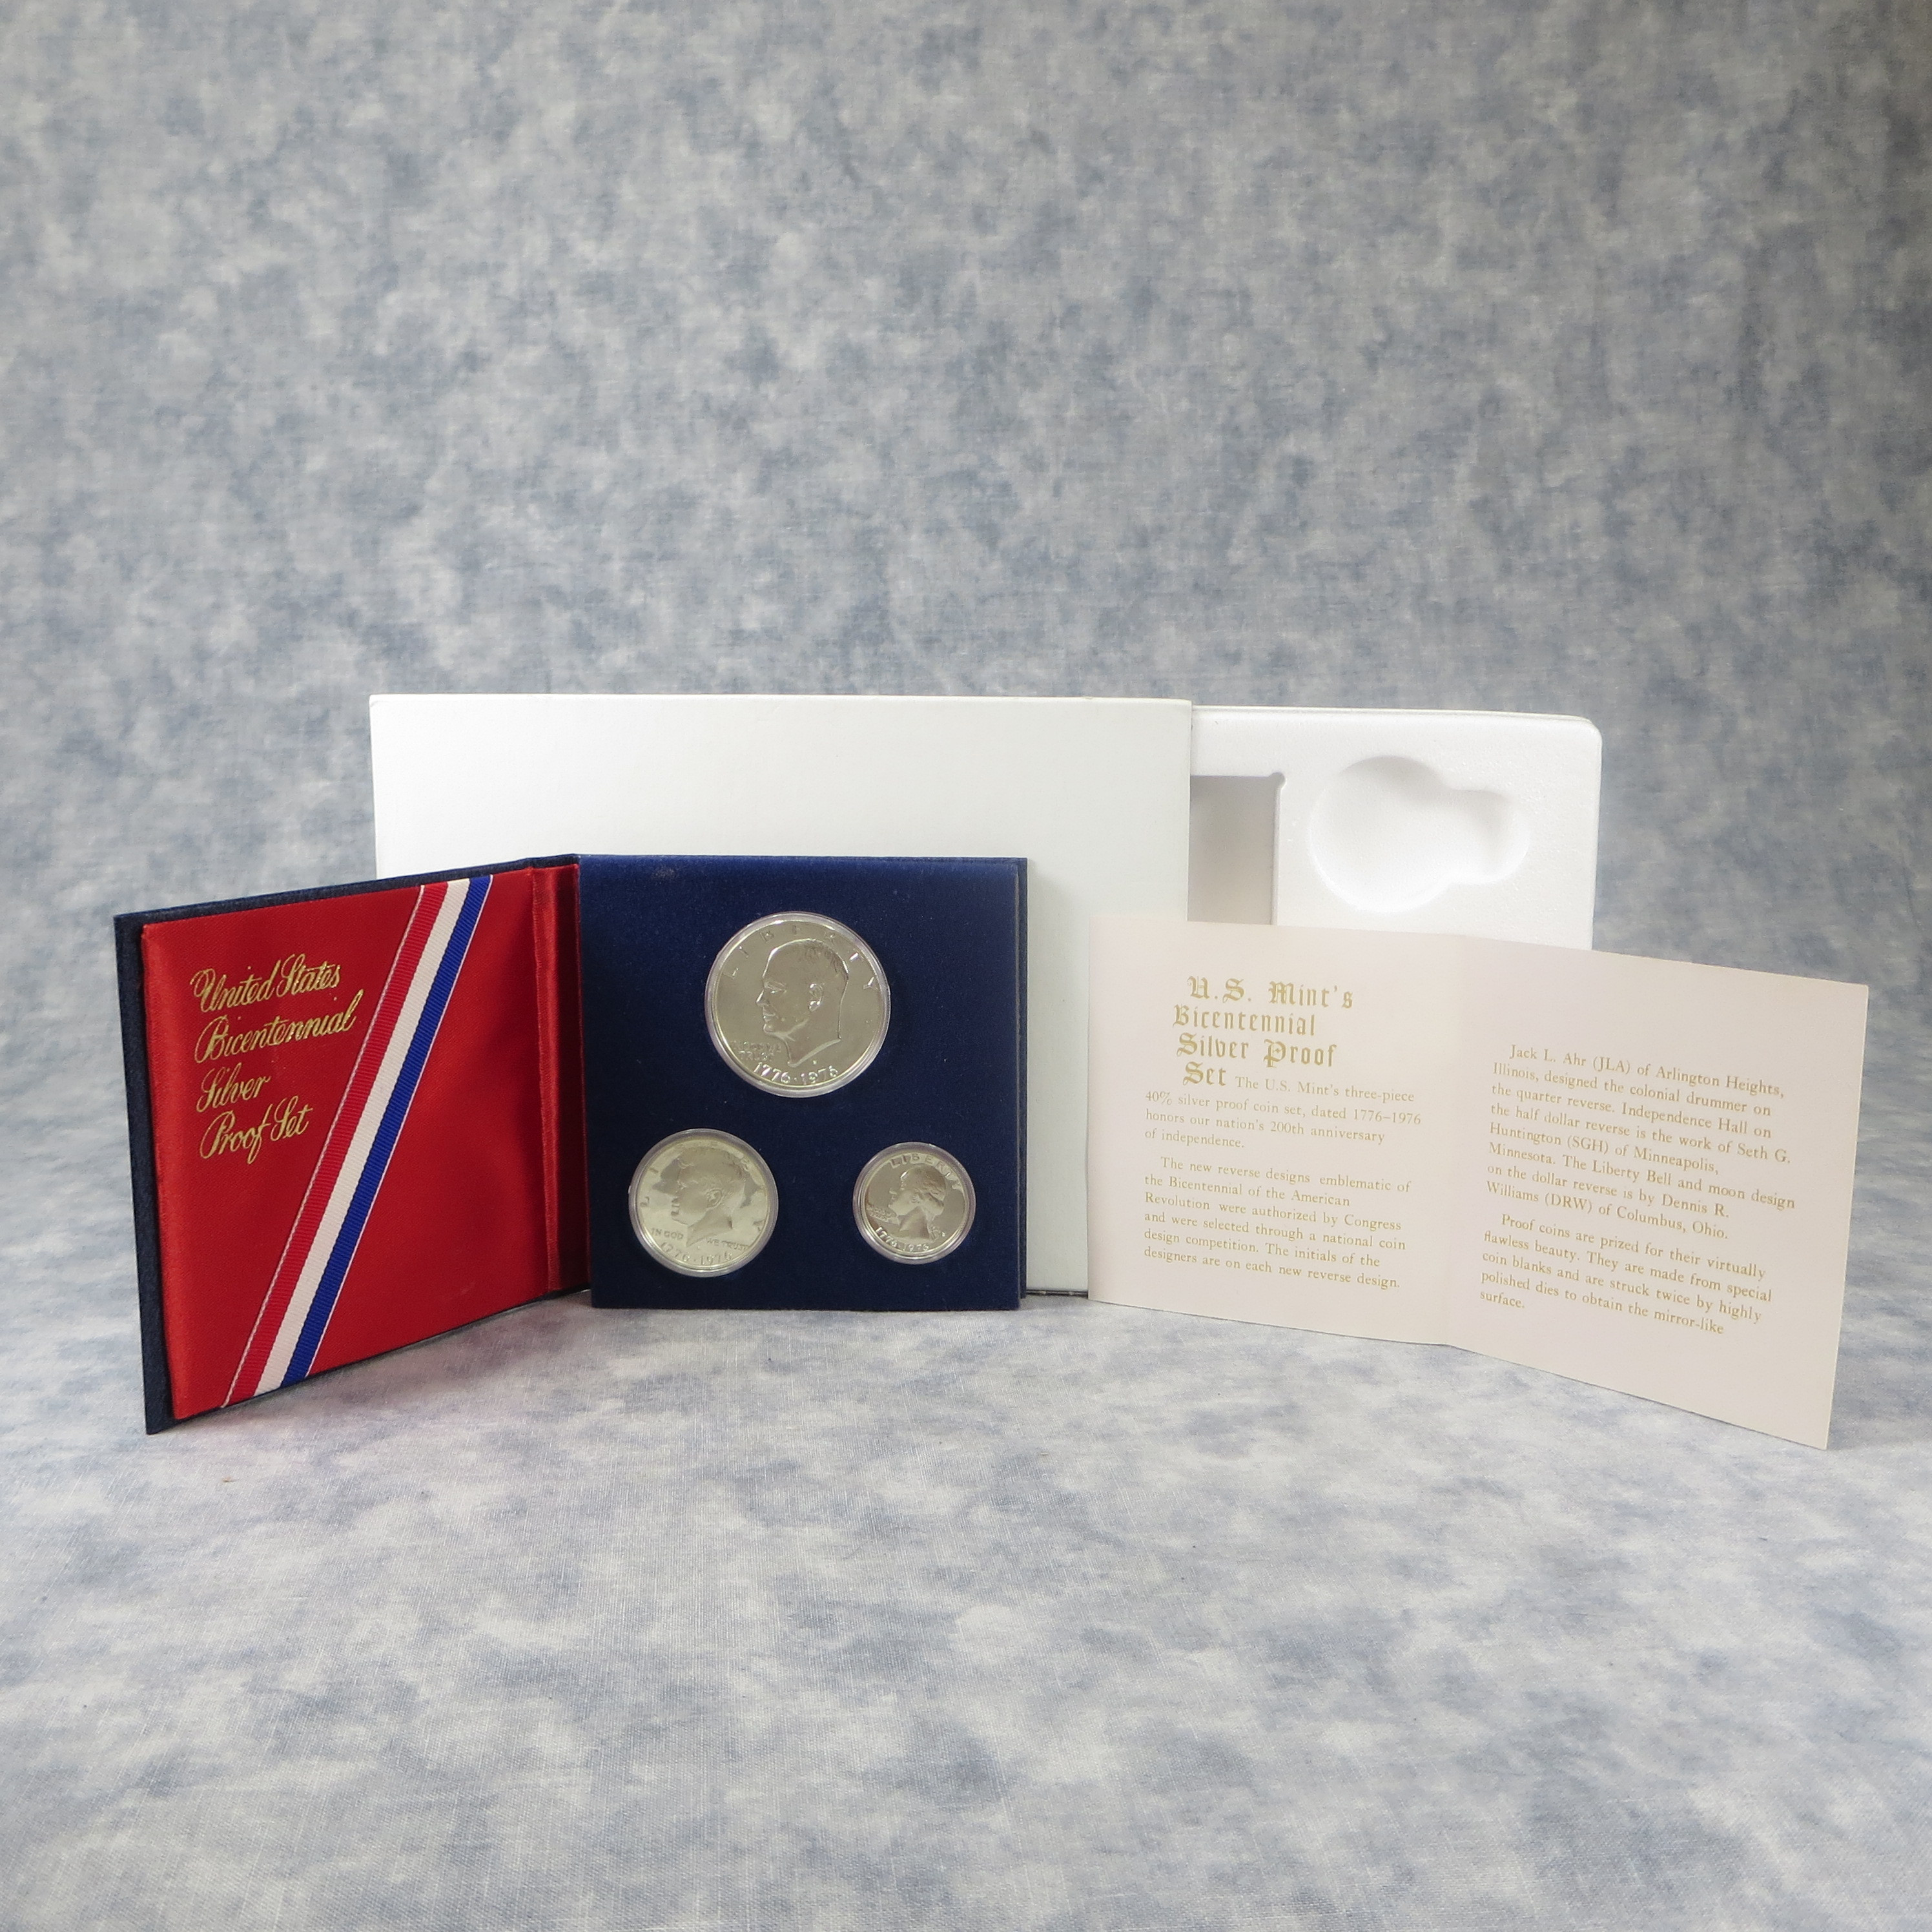 Awesome Value Of Bicentennial 3 Coins Silver Proof Set U S Mint Us Bicentennial Silver Proof Set Of Beautiful 42 Images Us Bicentennial Silver Proof Set